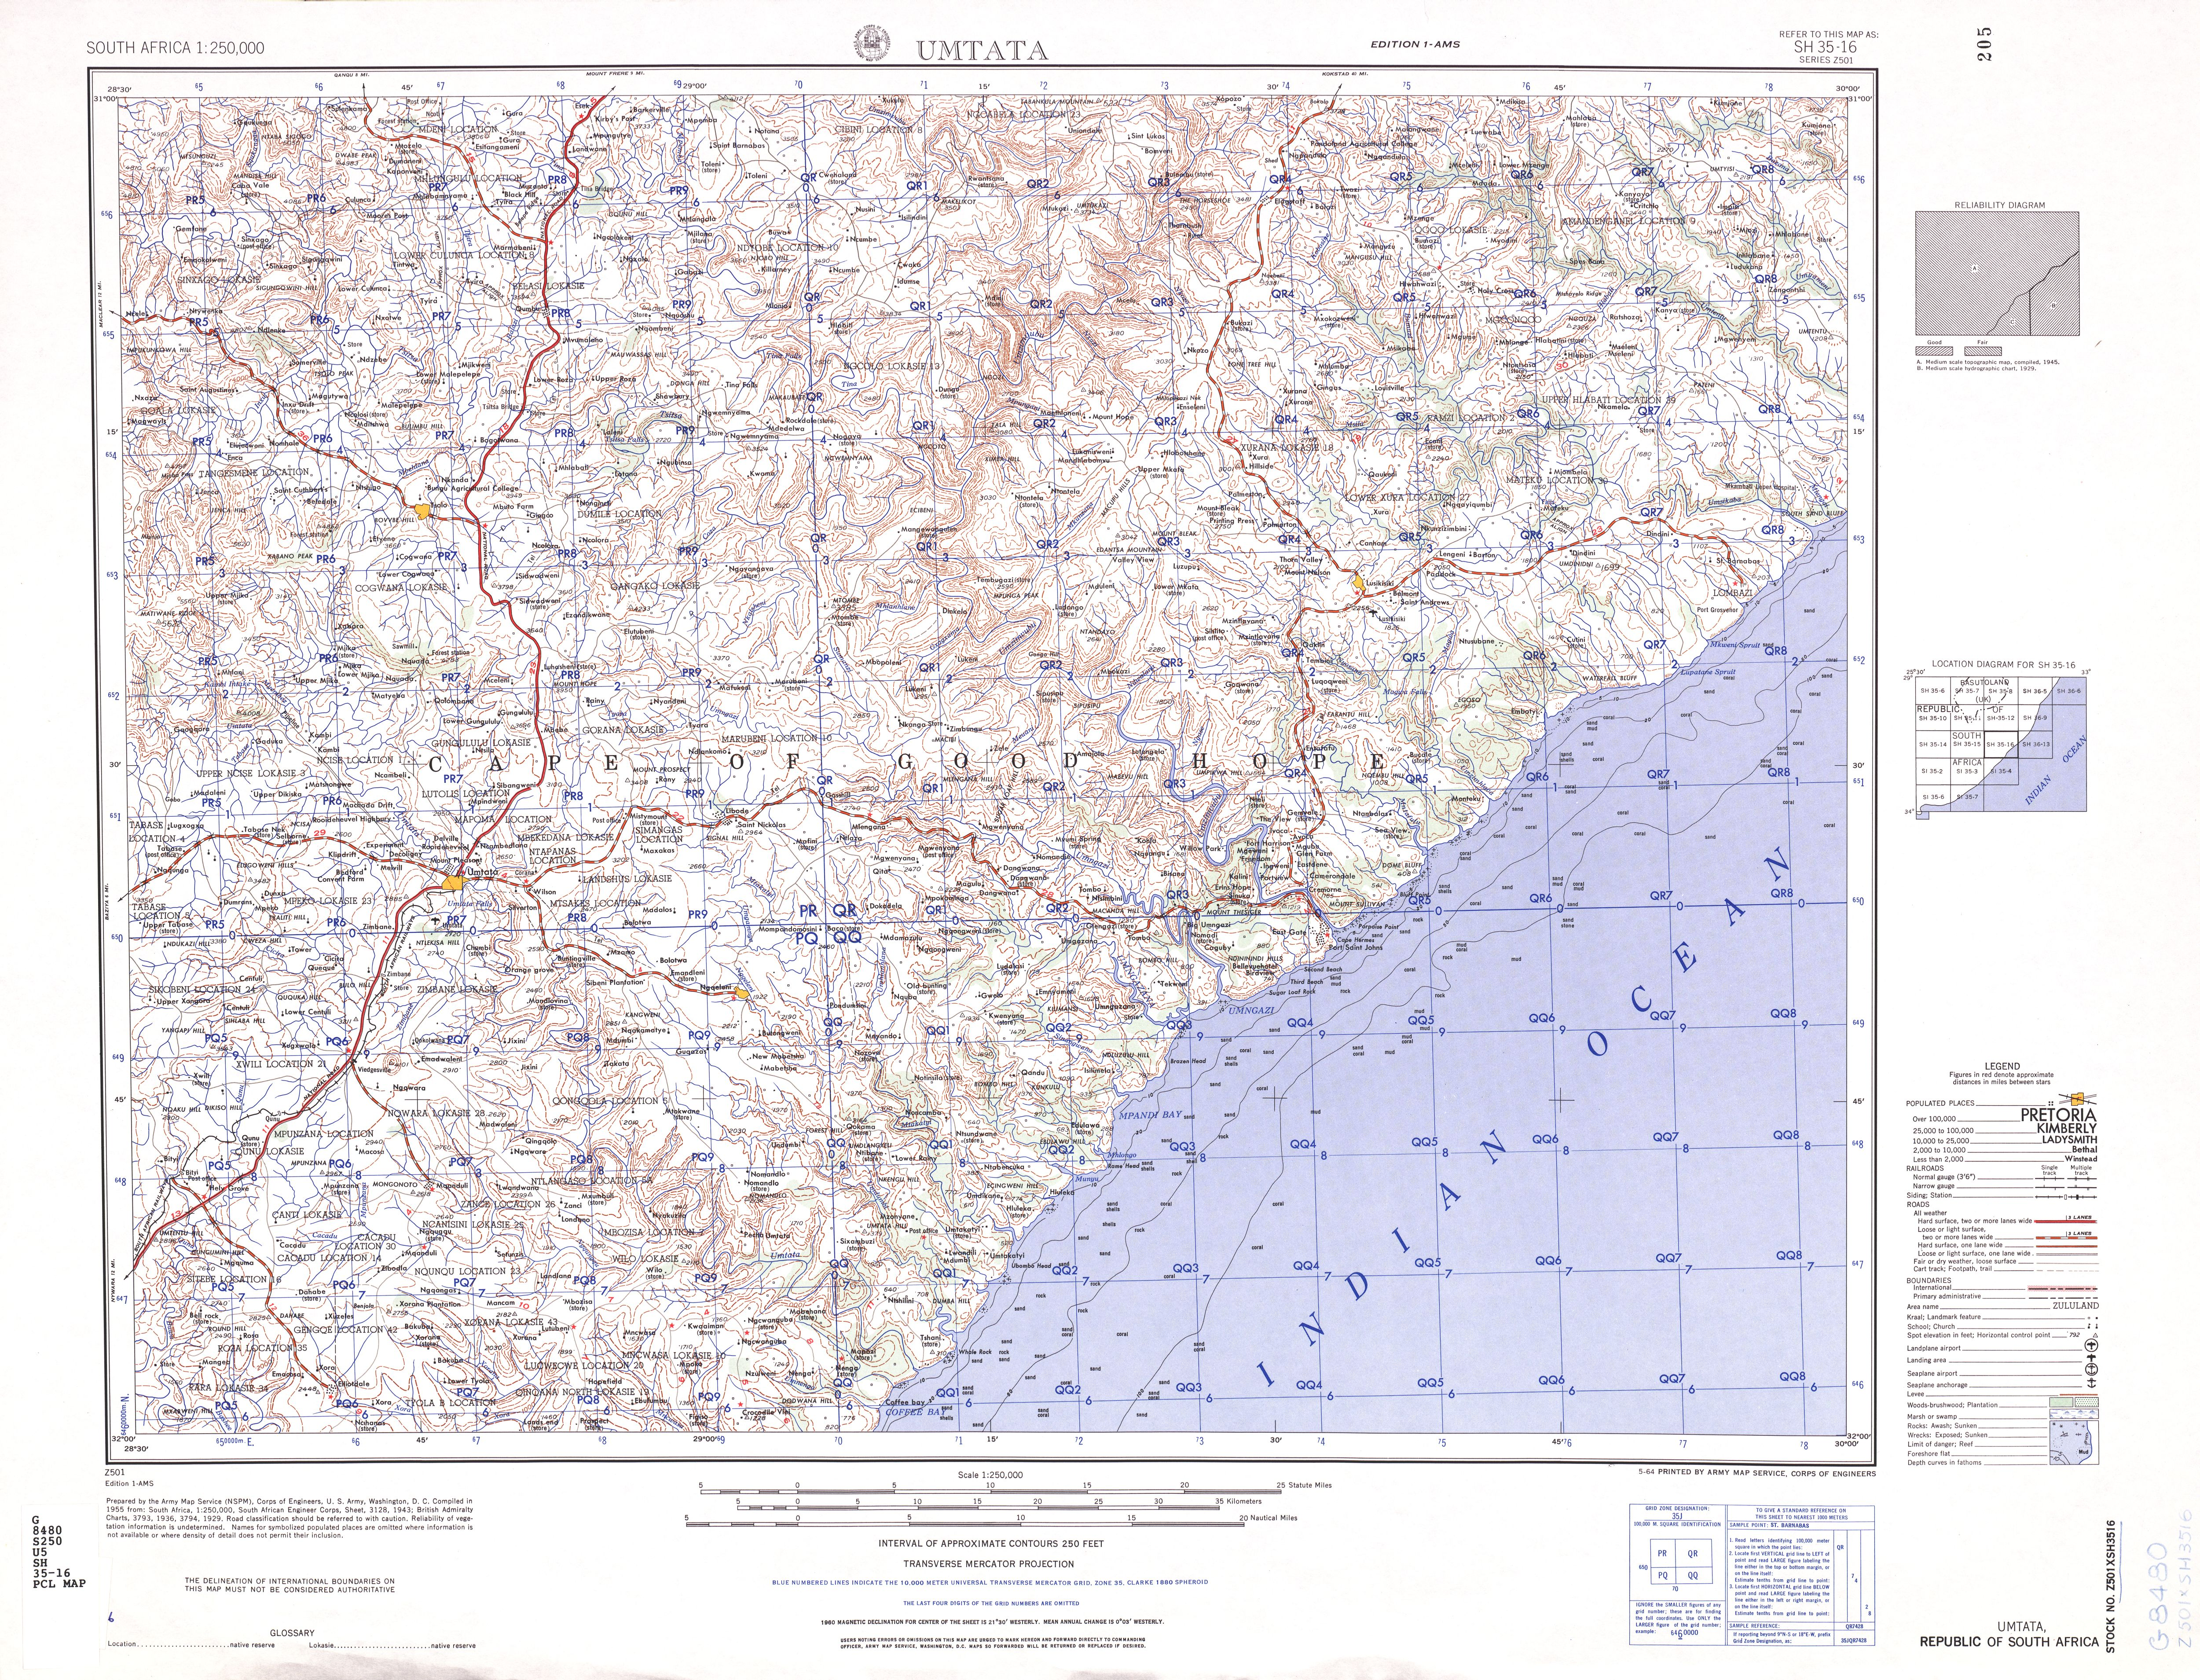 South Africa AMS Topographic Maps - Perry-Castañeda Map ... on topographic map west africa, topographical map of africa, elevation topographic map africa,